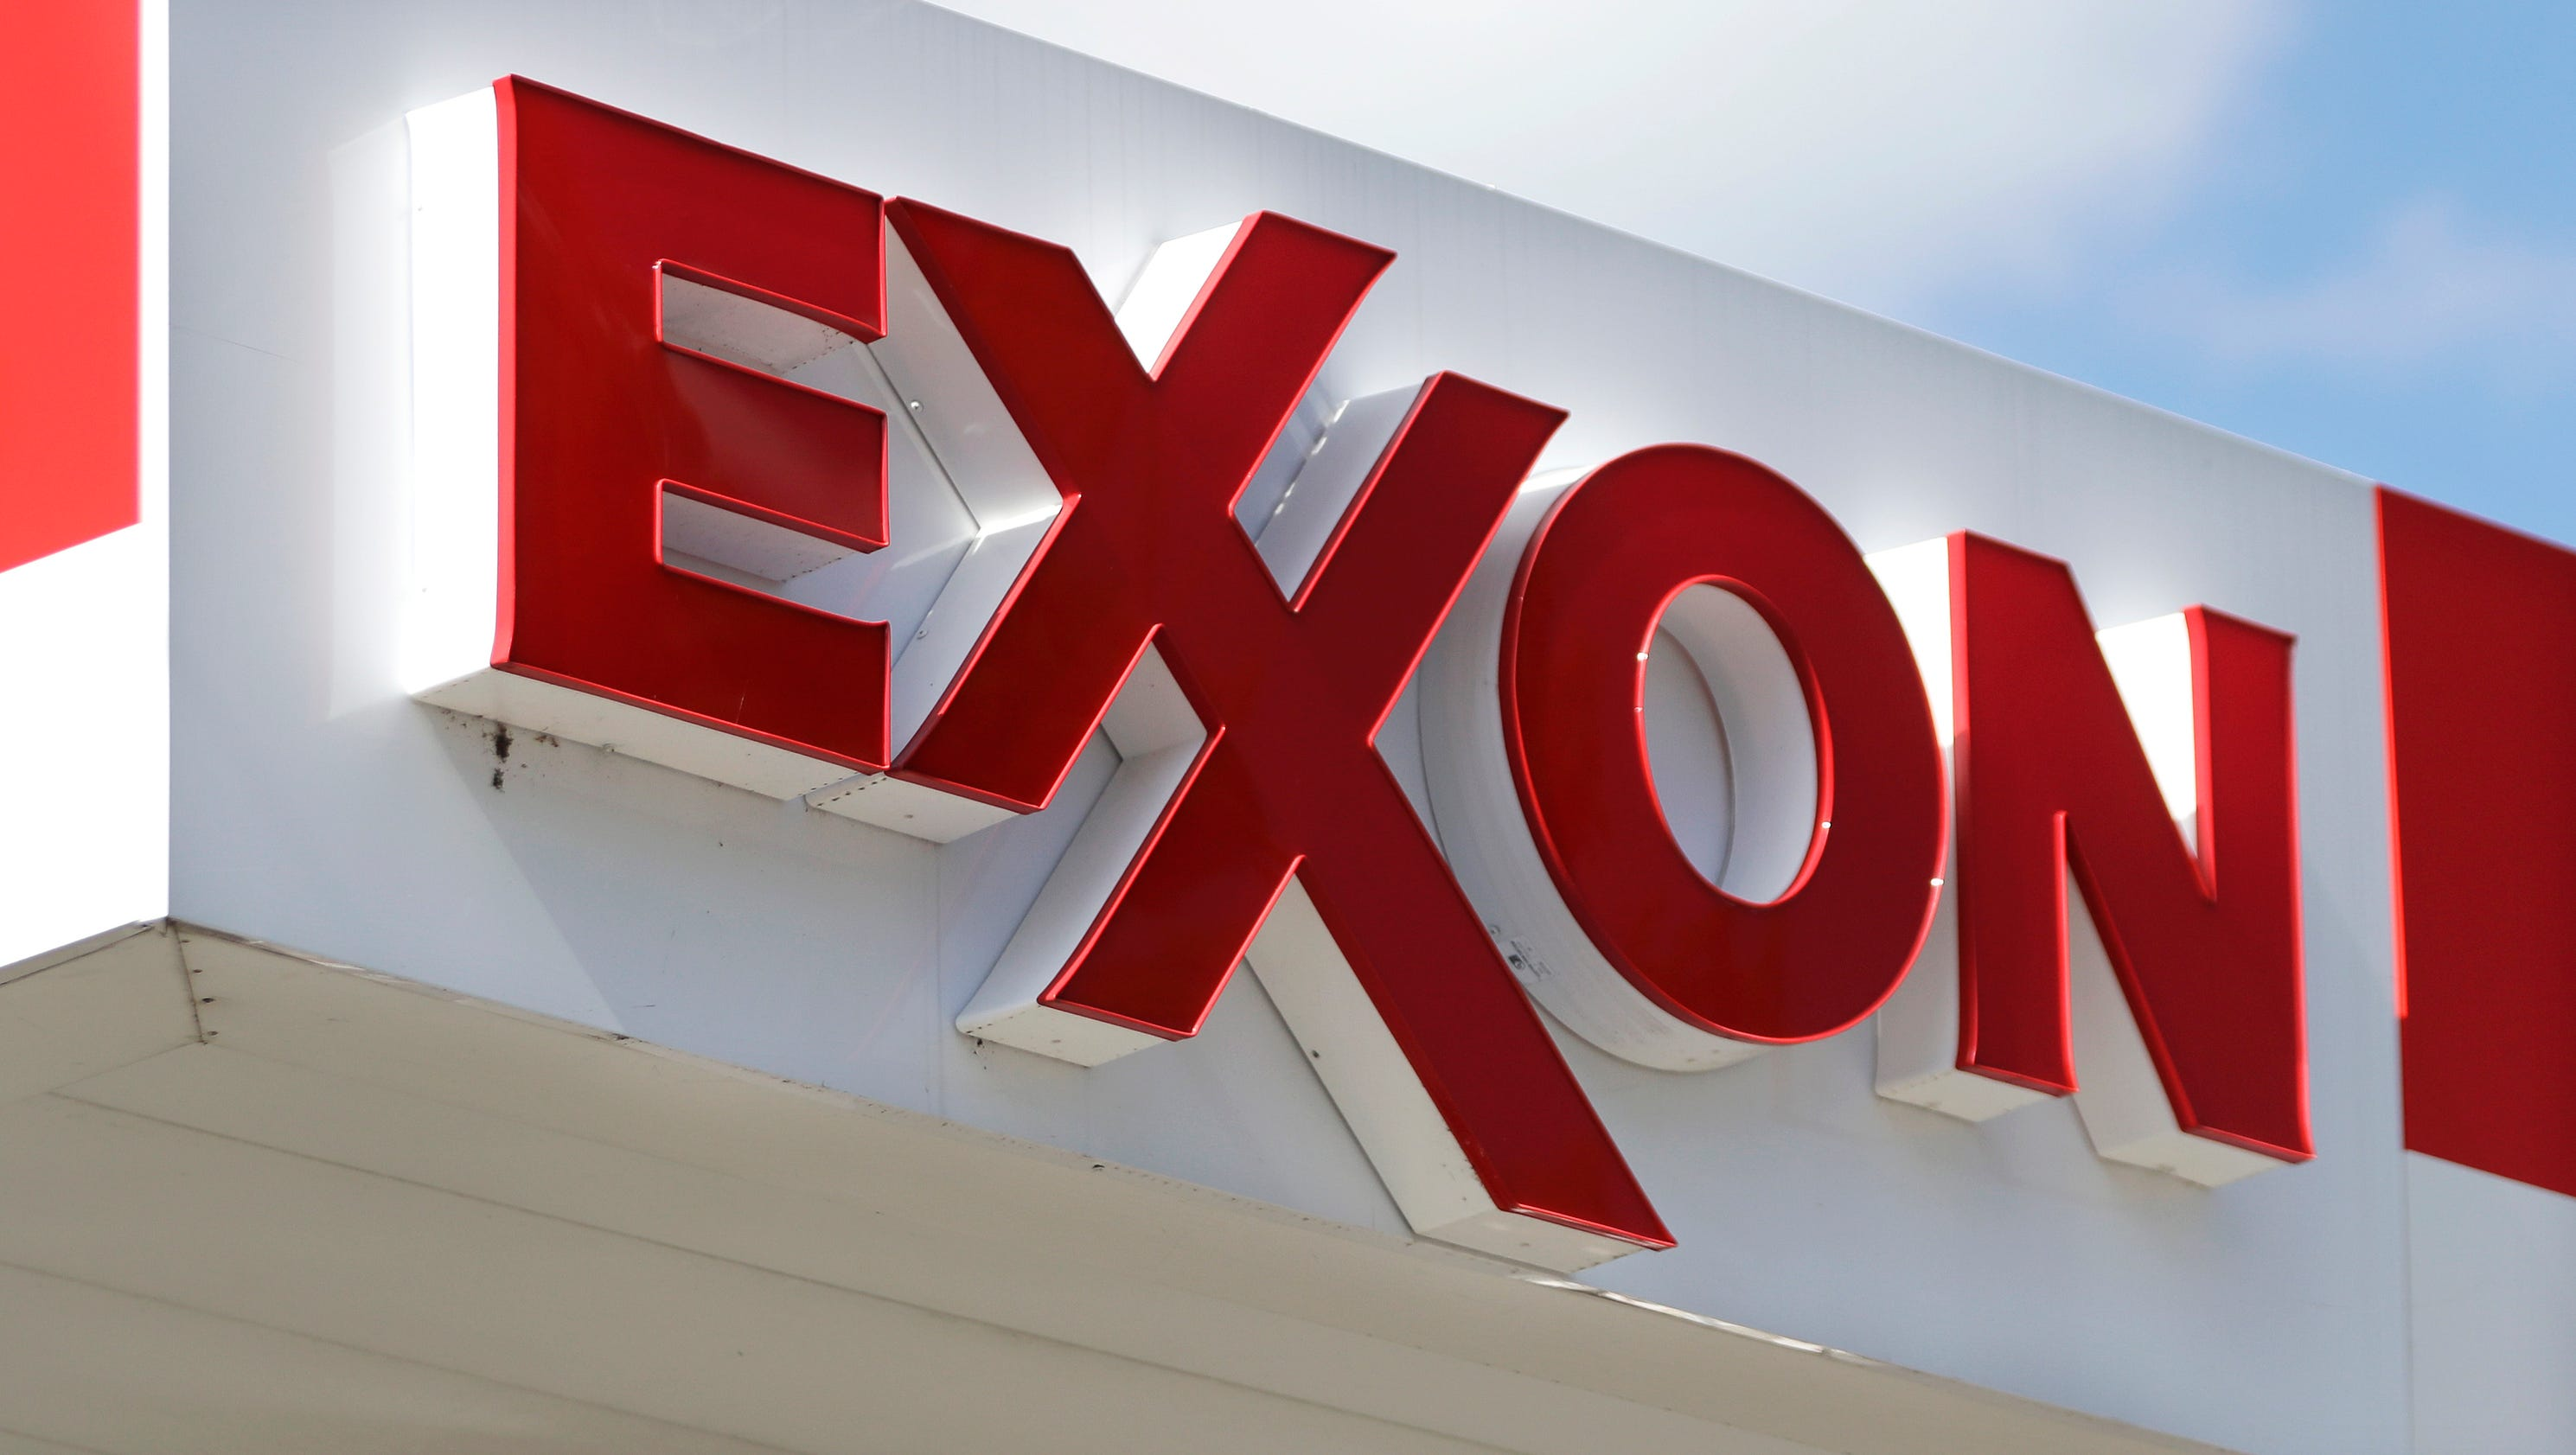 Exxon must turn over climate change documents, Mass. court rules